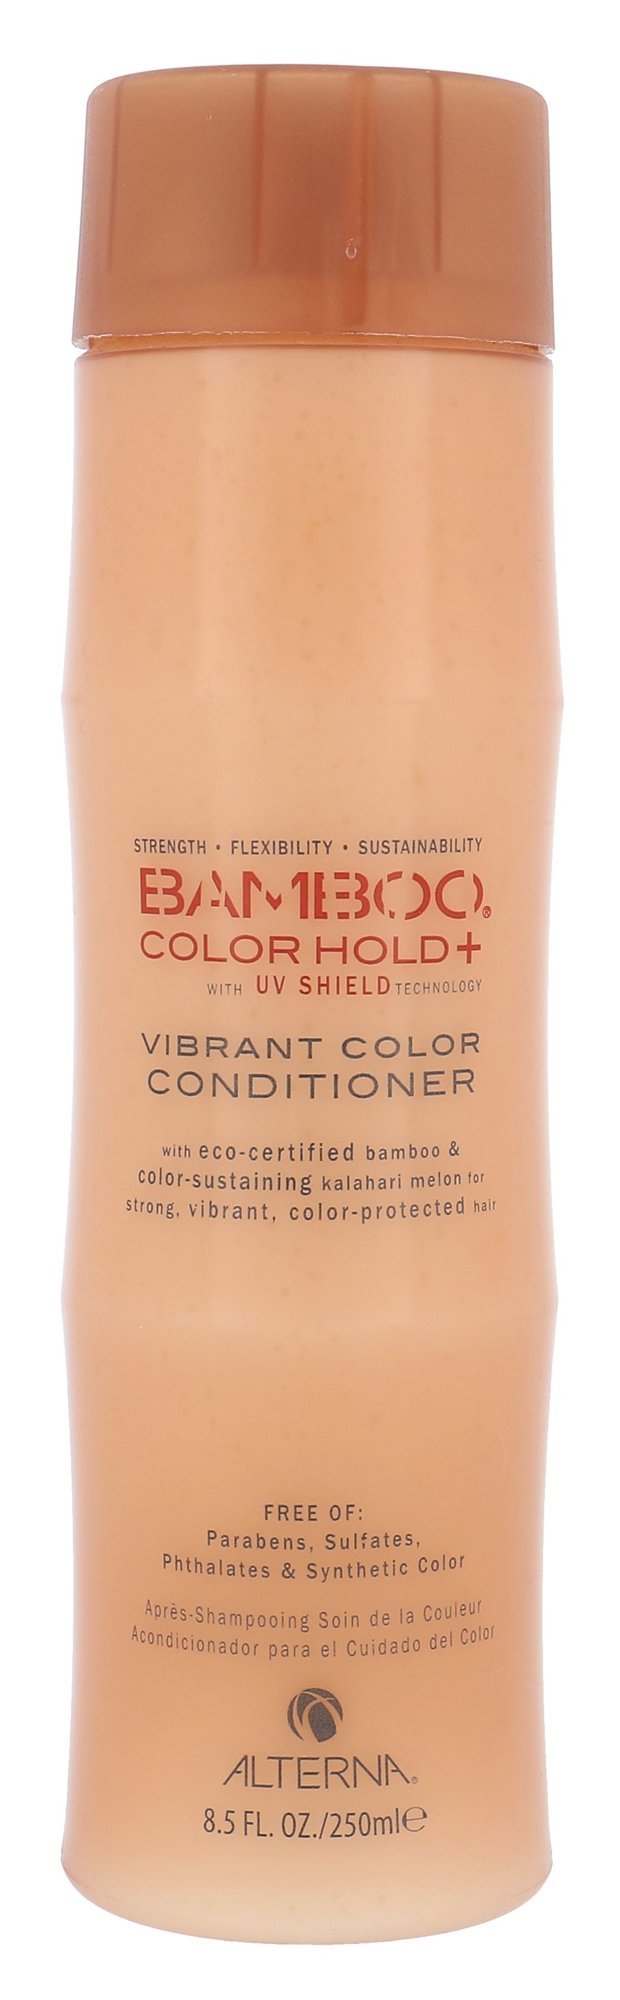 Alterna Bamboo Color Hold+ Cosmetic 250ml